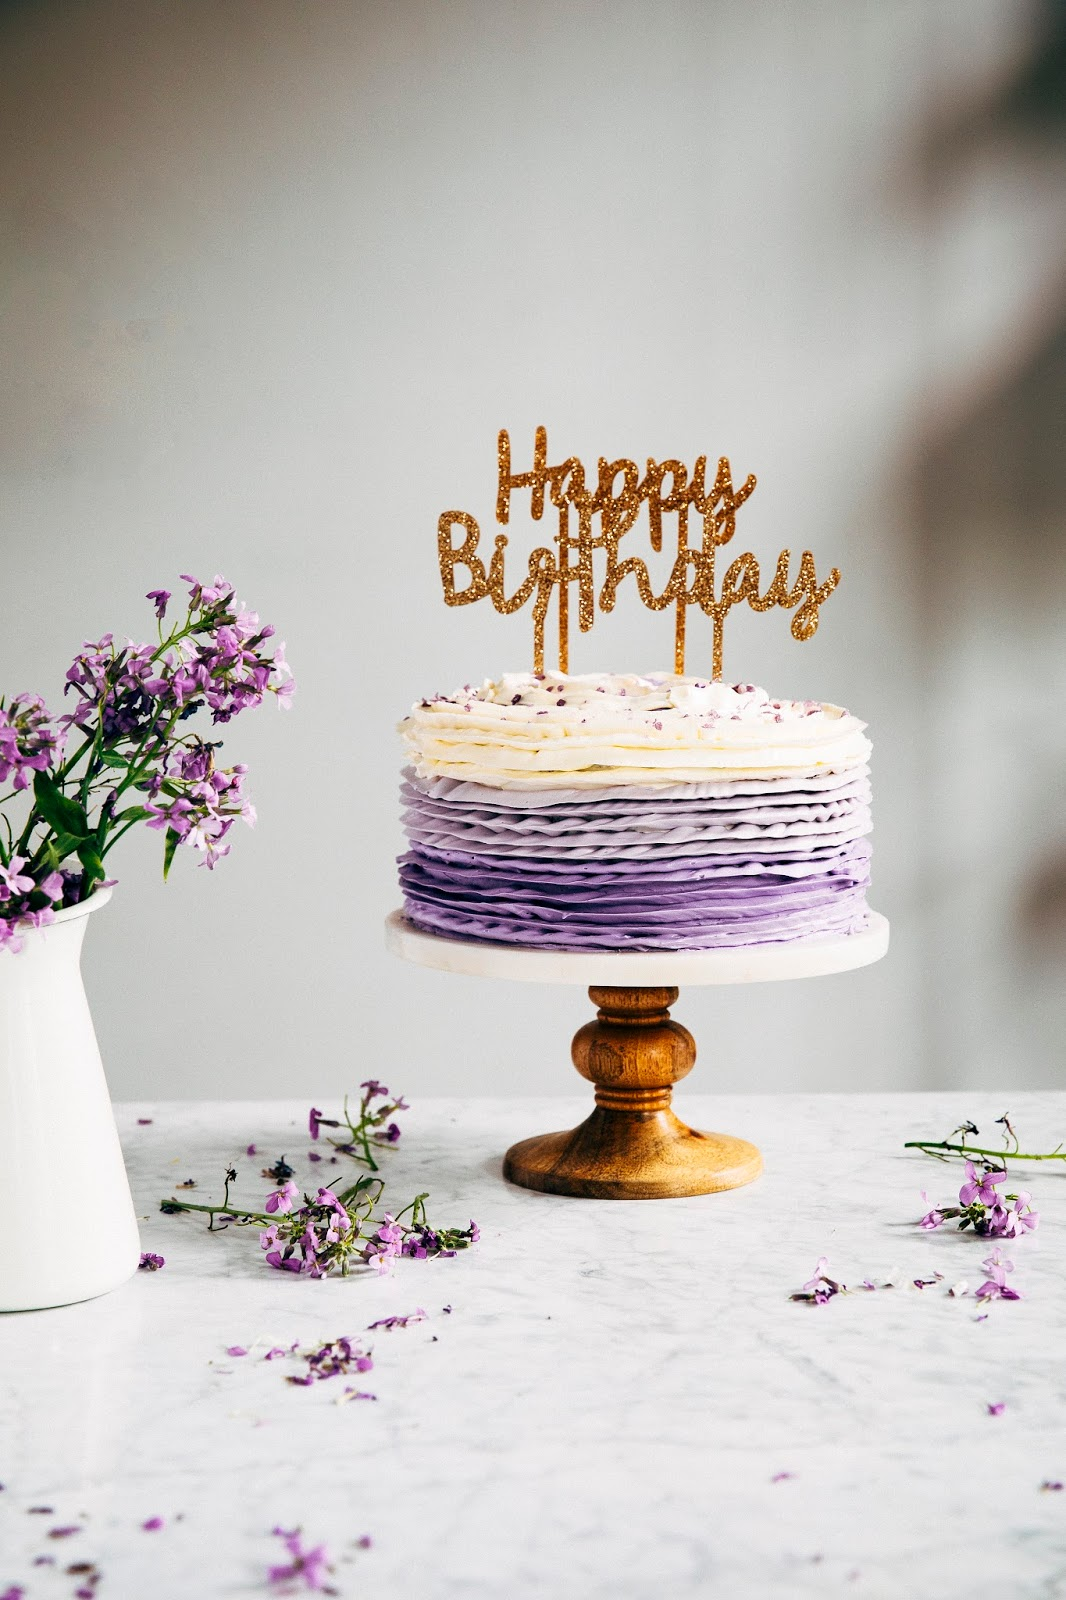 Tremendous 30Th Birthday Chocolate Cake With Lavender Ruffle Frosting Personalised Birthday Cards Veneteletsinfo